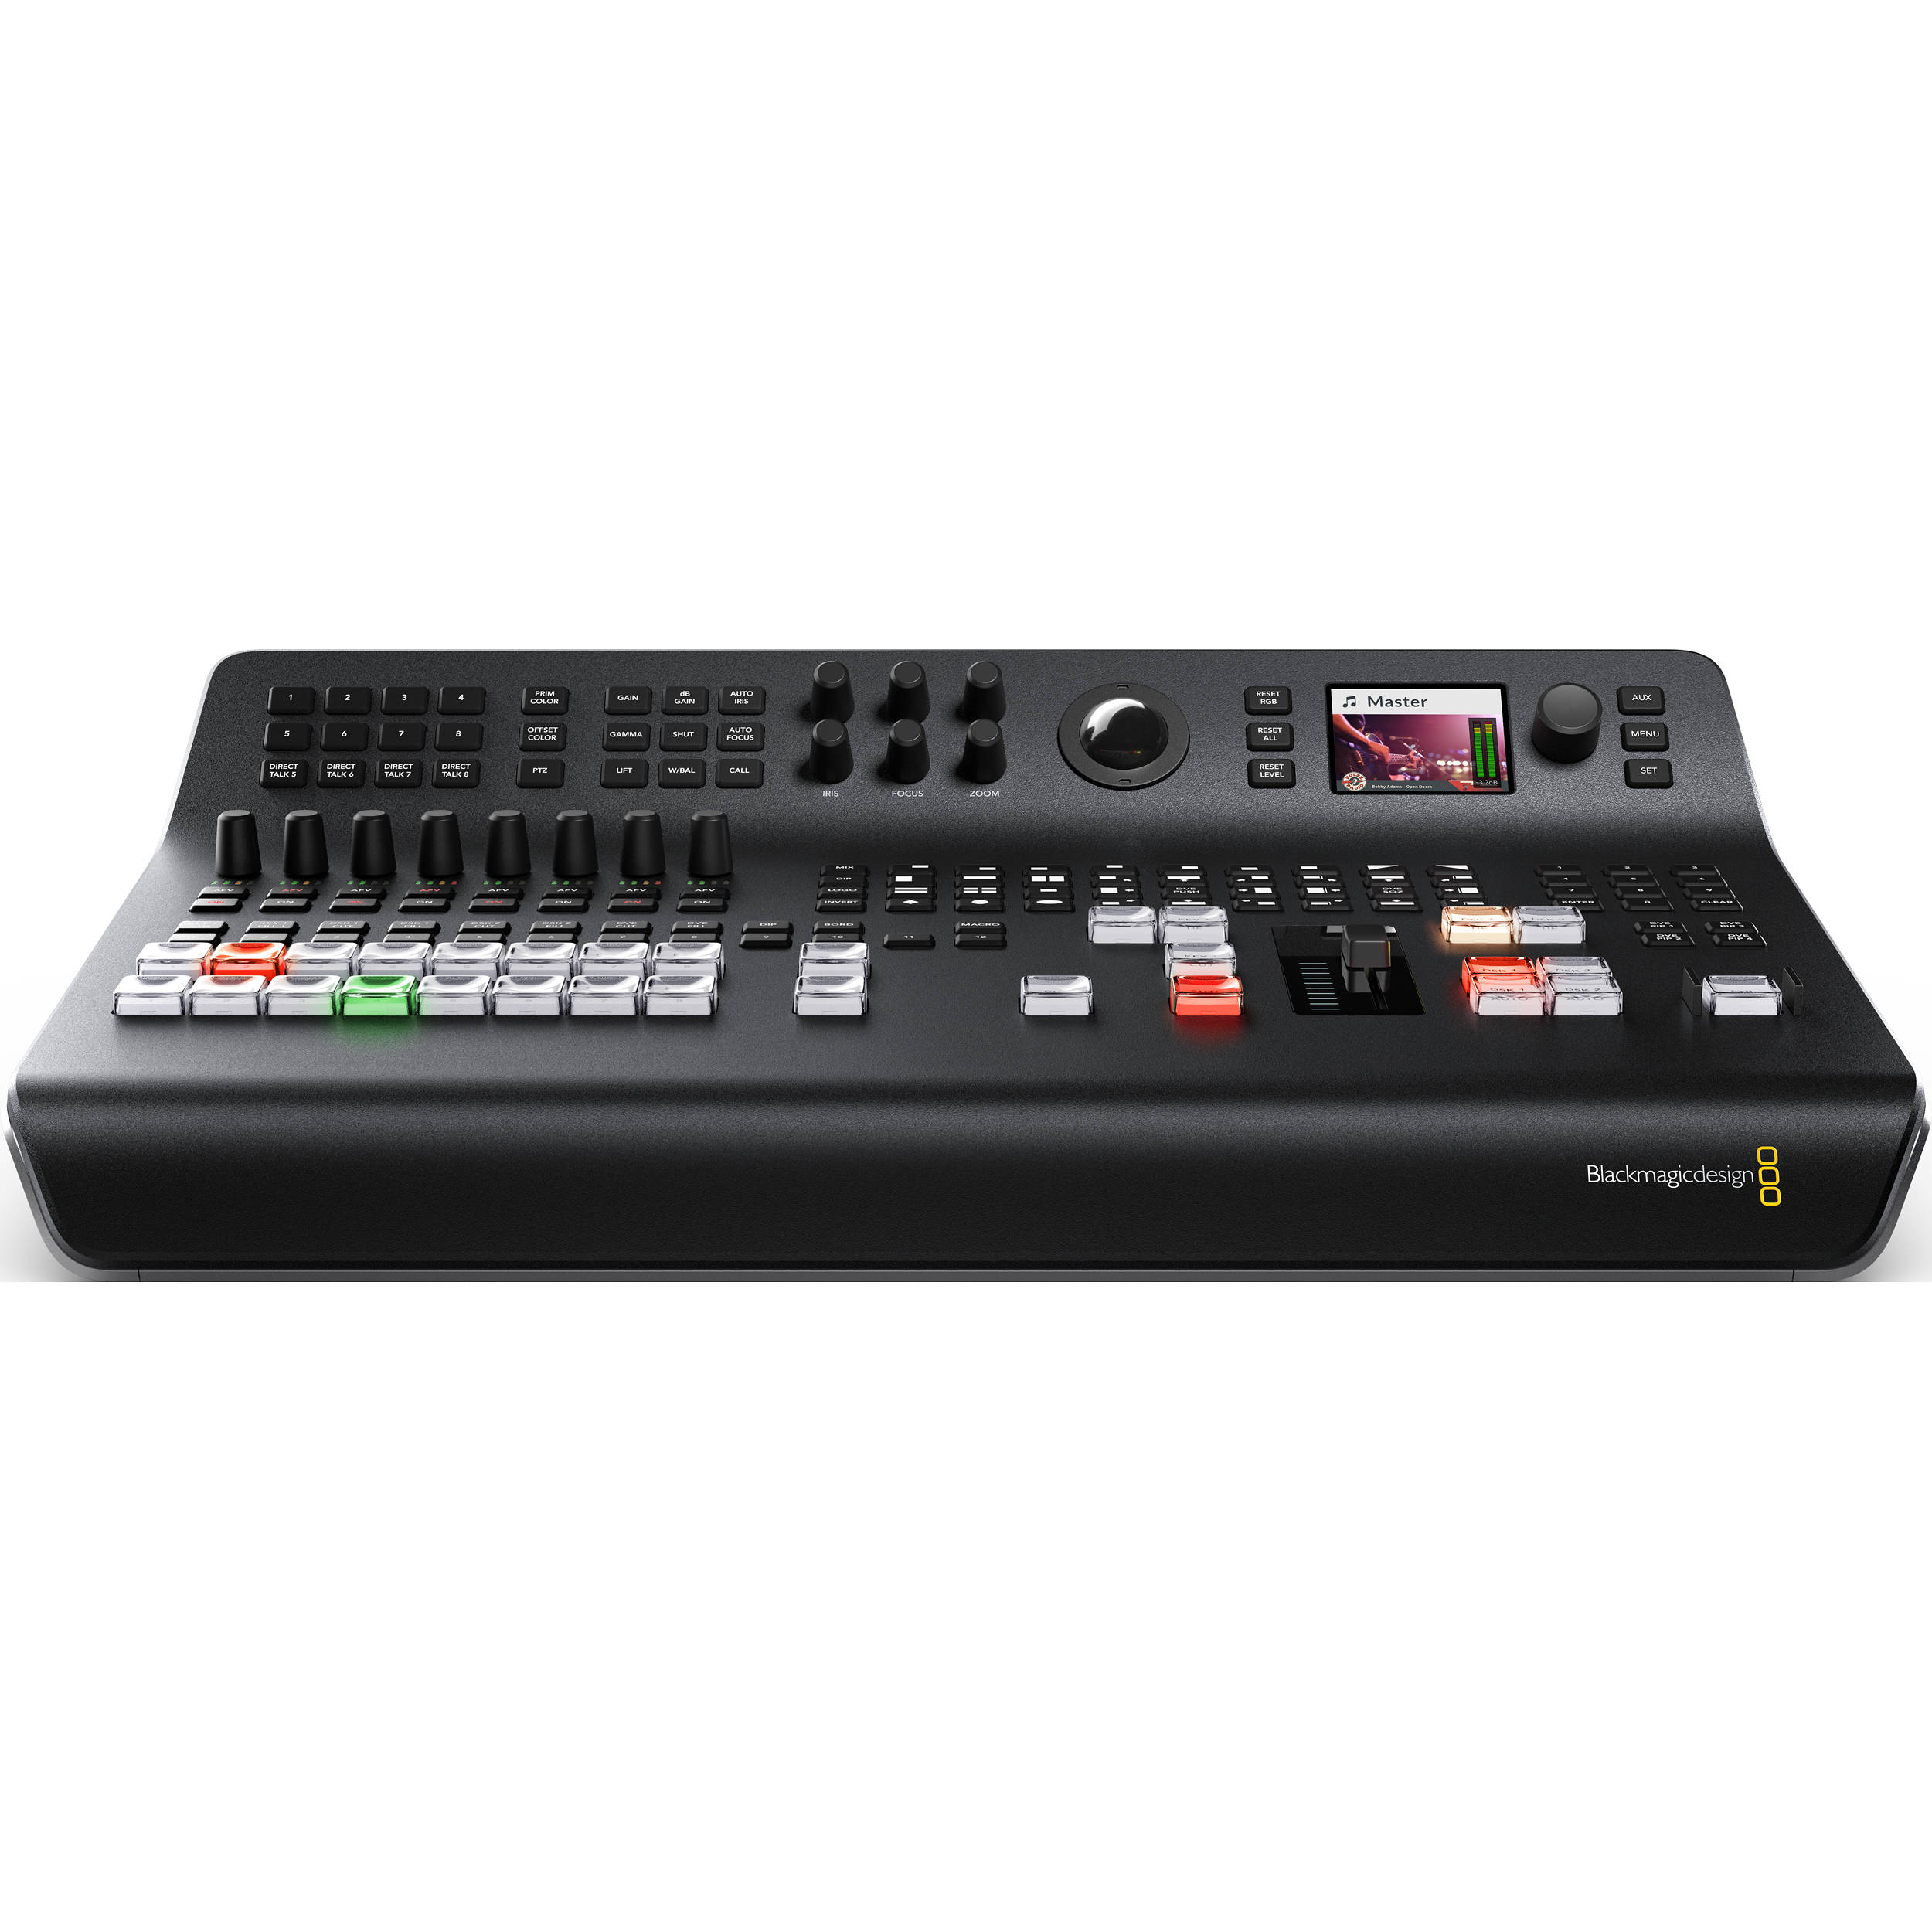 Professional Video Switchers Bh Photo Two Way Switch Price In India Blackmagic Design Atem Television Studio Pro Hd Live Production Switcher